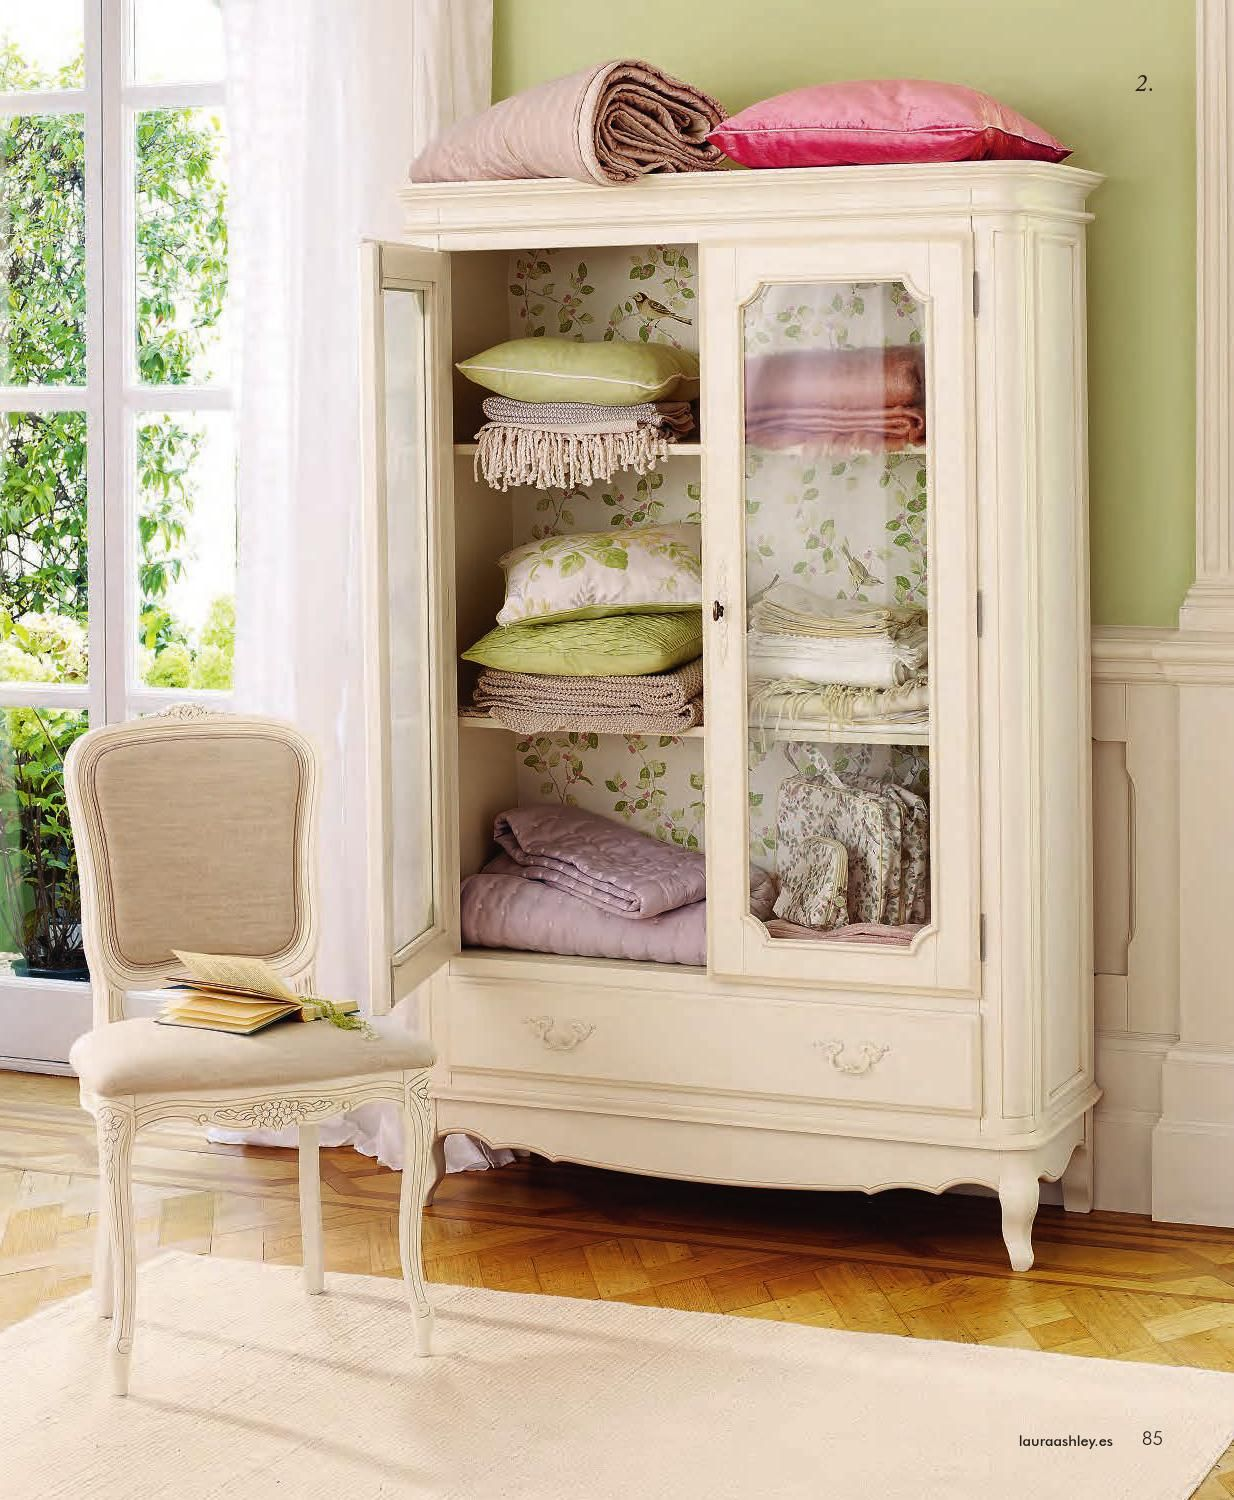 Pin De Denise Spring En Sweet Pea Cottage Pinterest  # Toallas Para Muebles